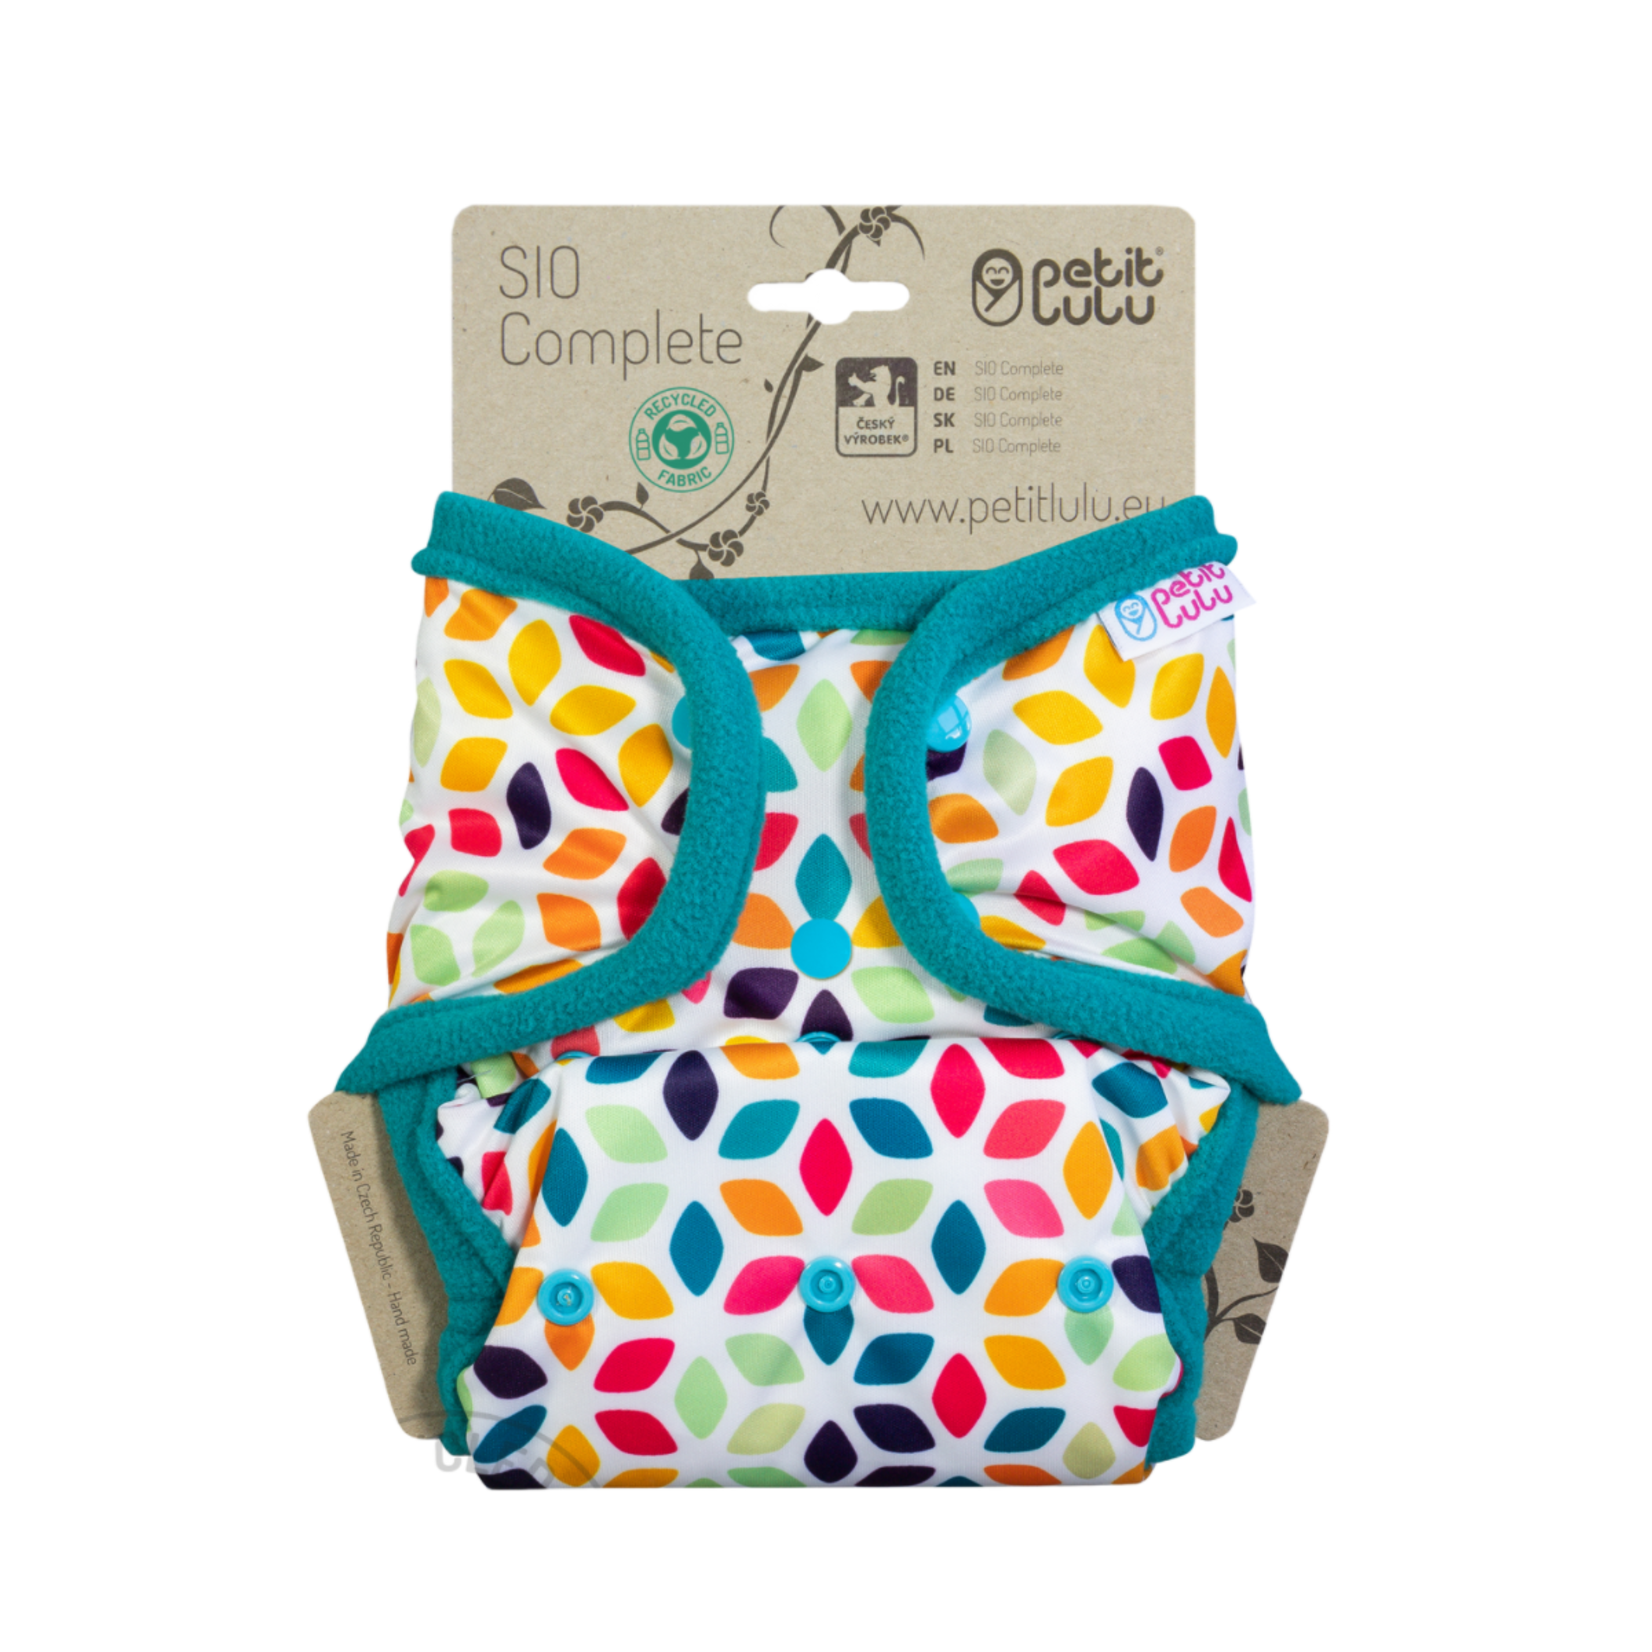 Petit Lulu SIO Complete (Floral Cubes) Snaps